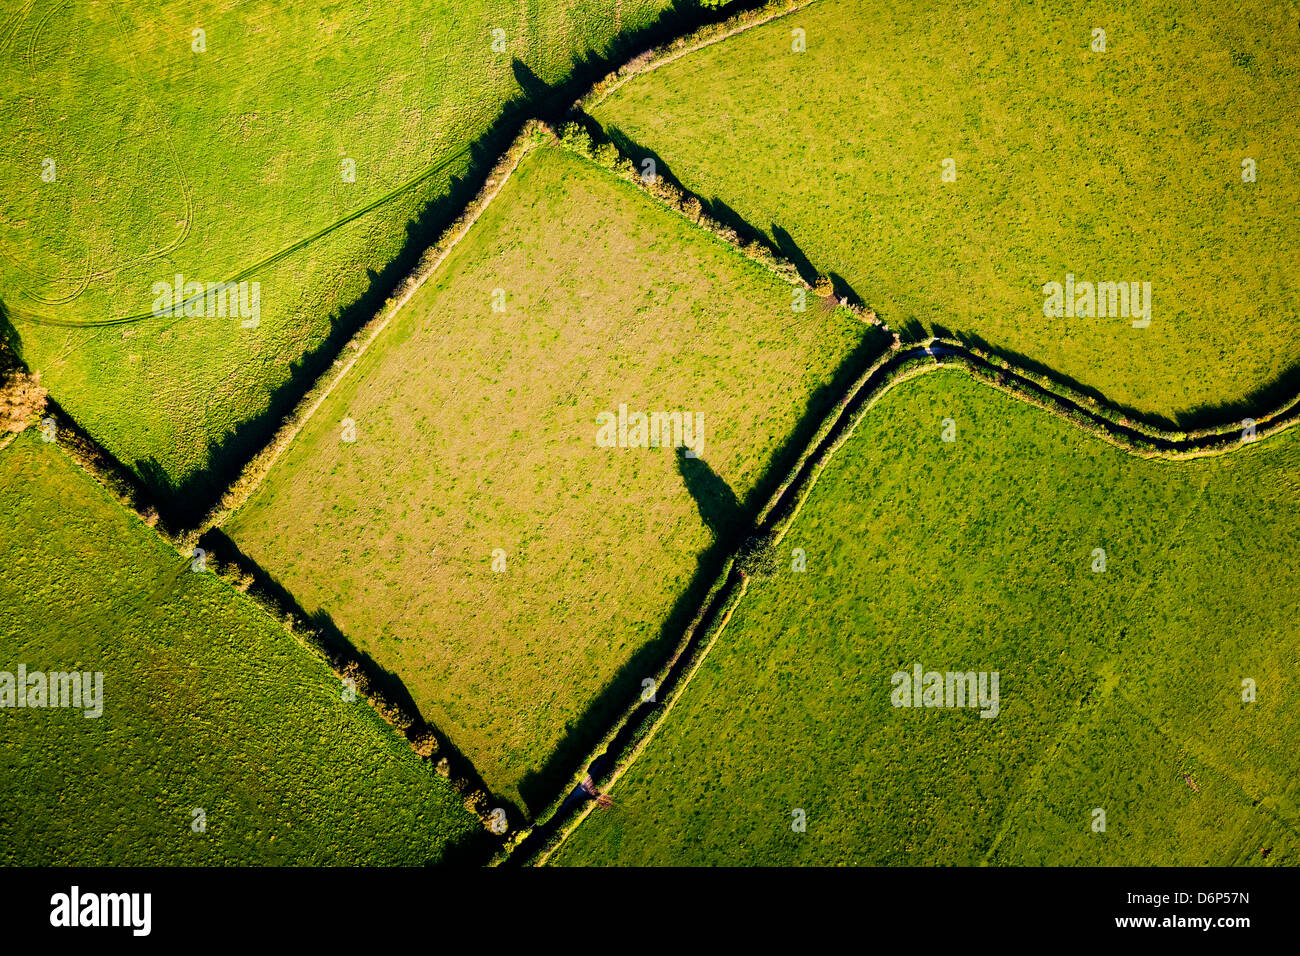 Aerial view showing geometric lines and shapes made by field boundaries in British countryside. - Stock Image